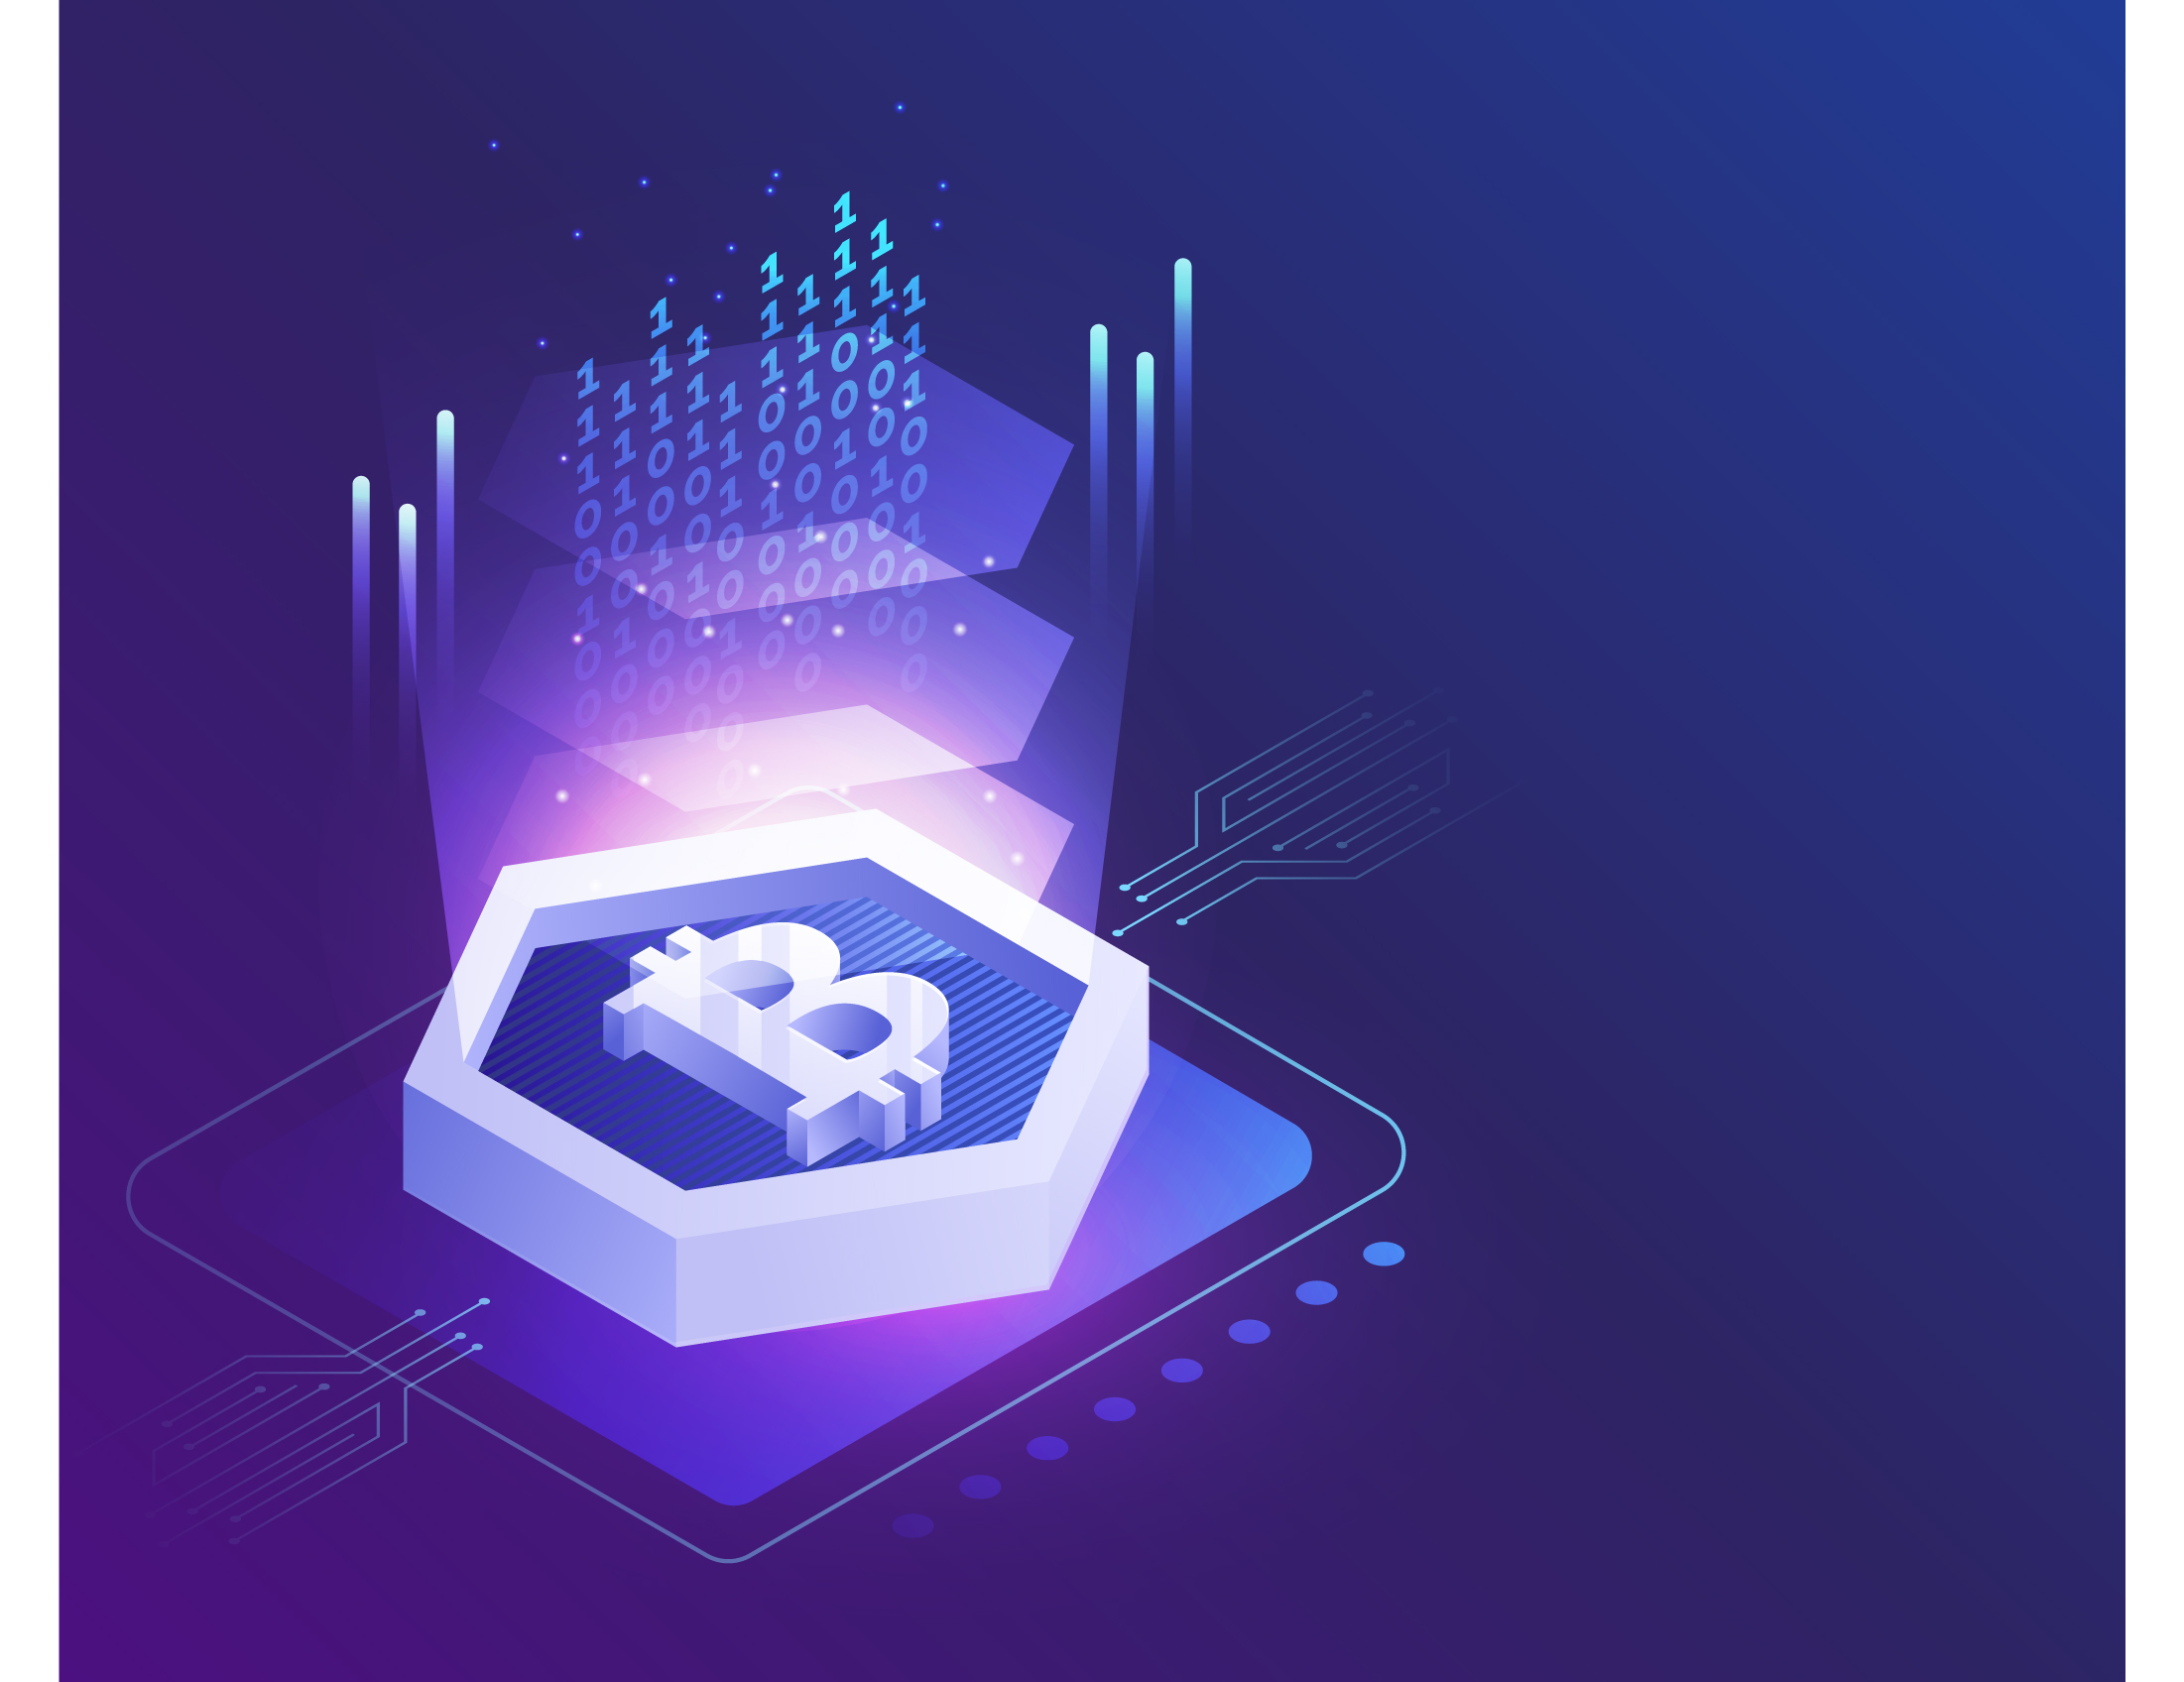 High-Performing Enterprise-Grade Blockchain Solution - Unlike the public cloud, Jura MineBot keeps your information completely private. Your digital assets are preserved and only you get to access and retrieve your files.